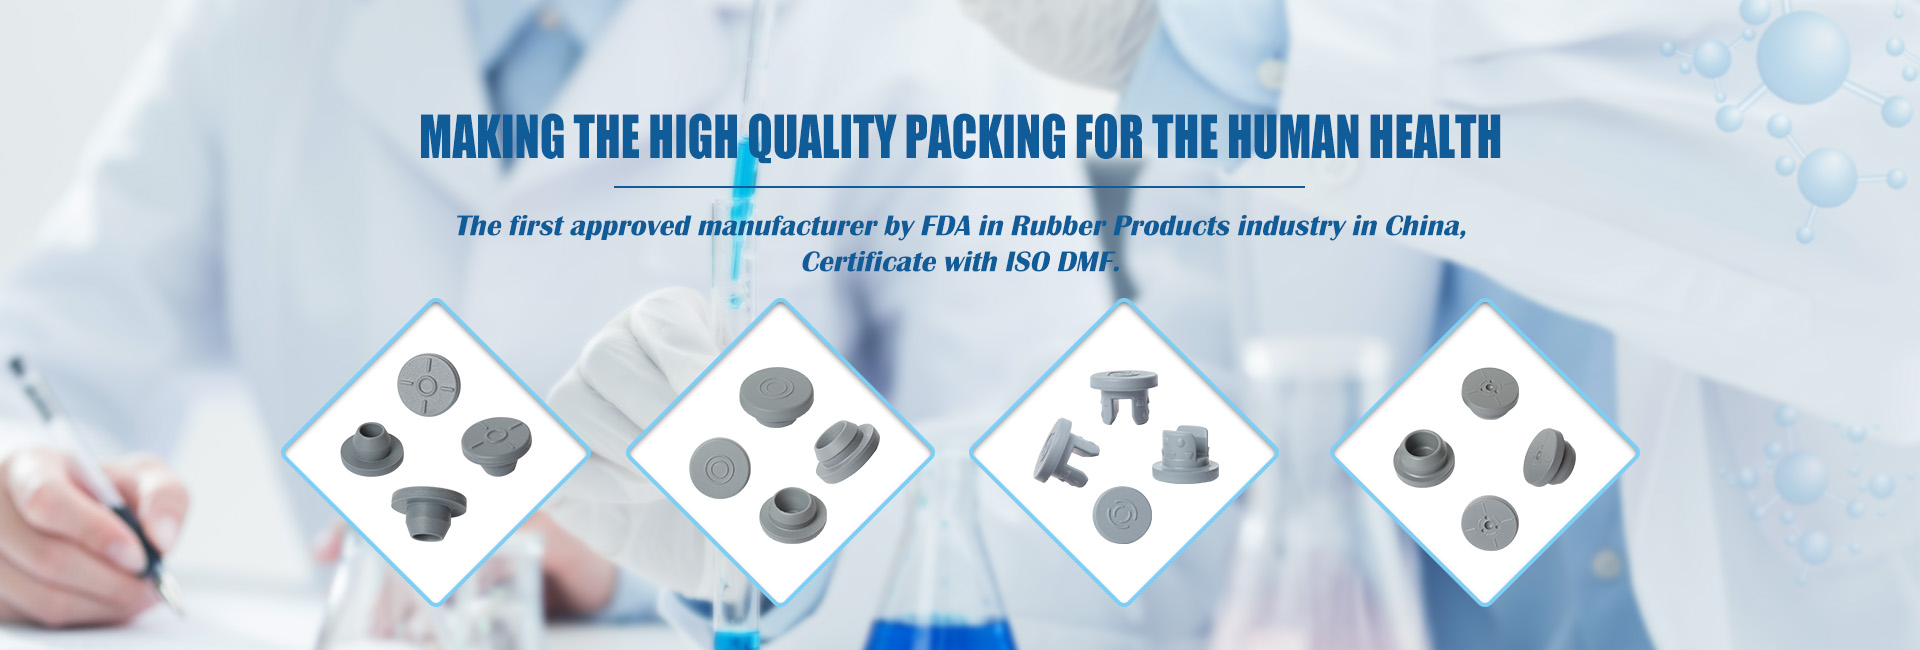 Making the high quality packing for the human health